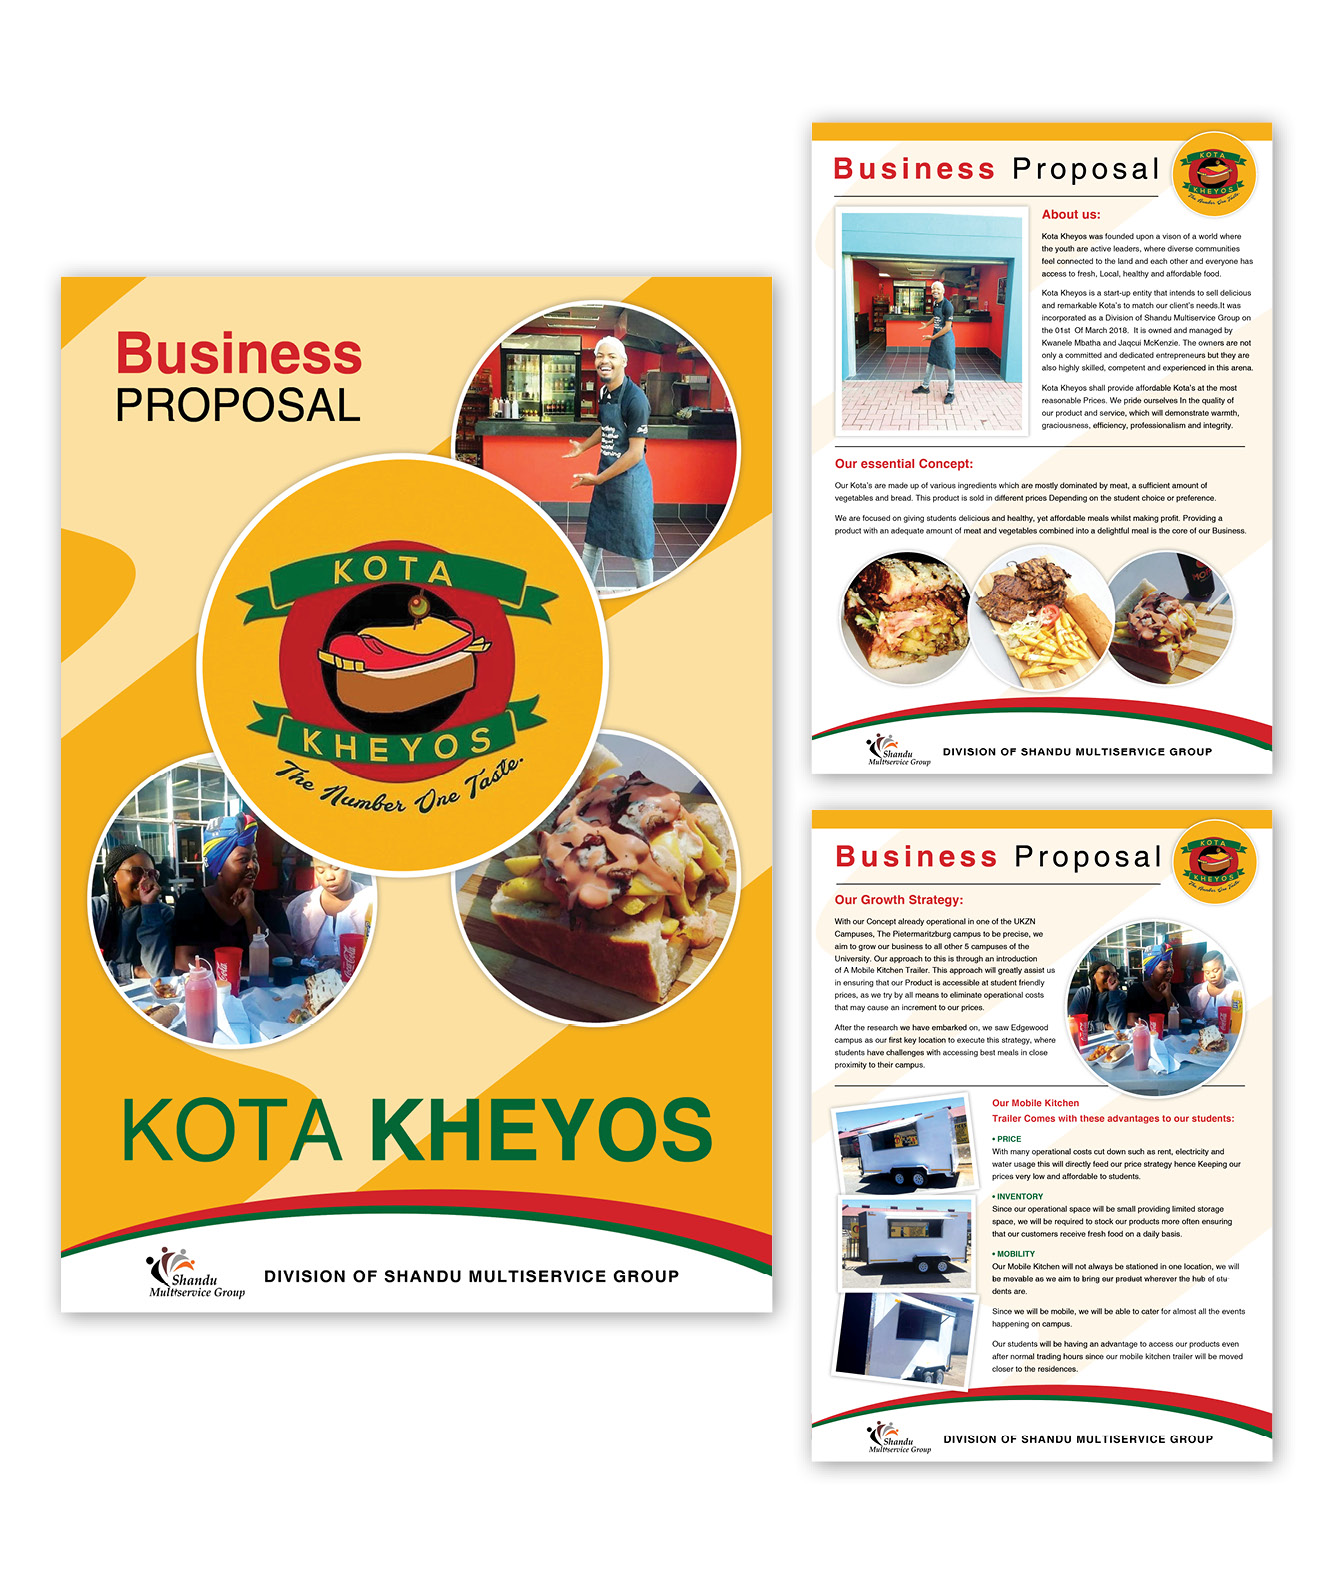 Kota Kheyos Business Proposal Design